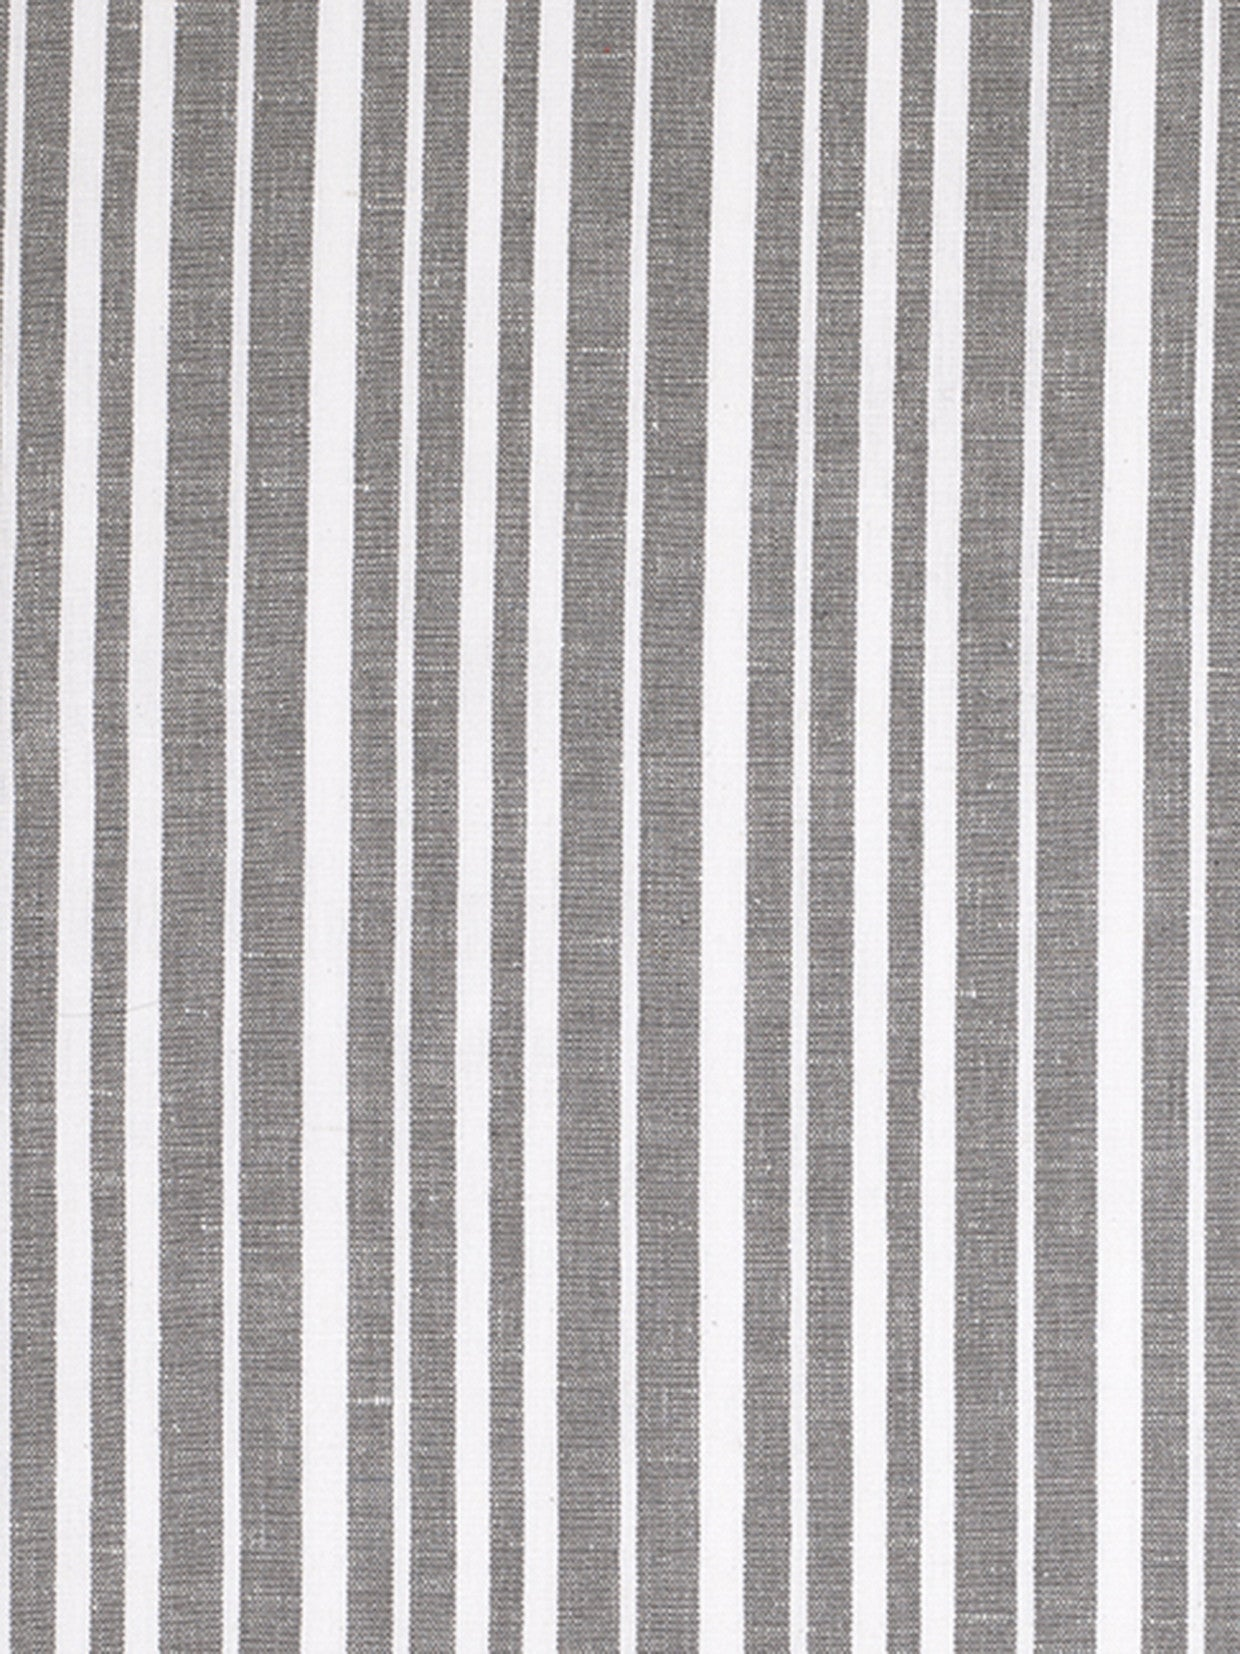 Palermo Ticking Stripe Cotton Linen Fabric by the Meter in Stone Grey